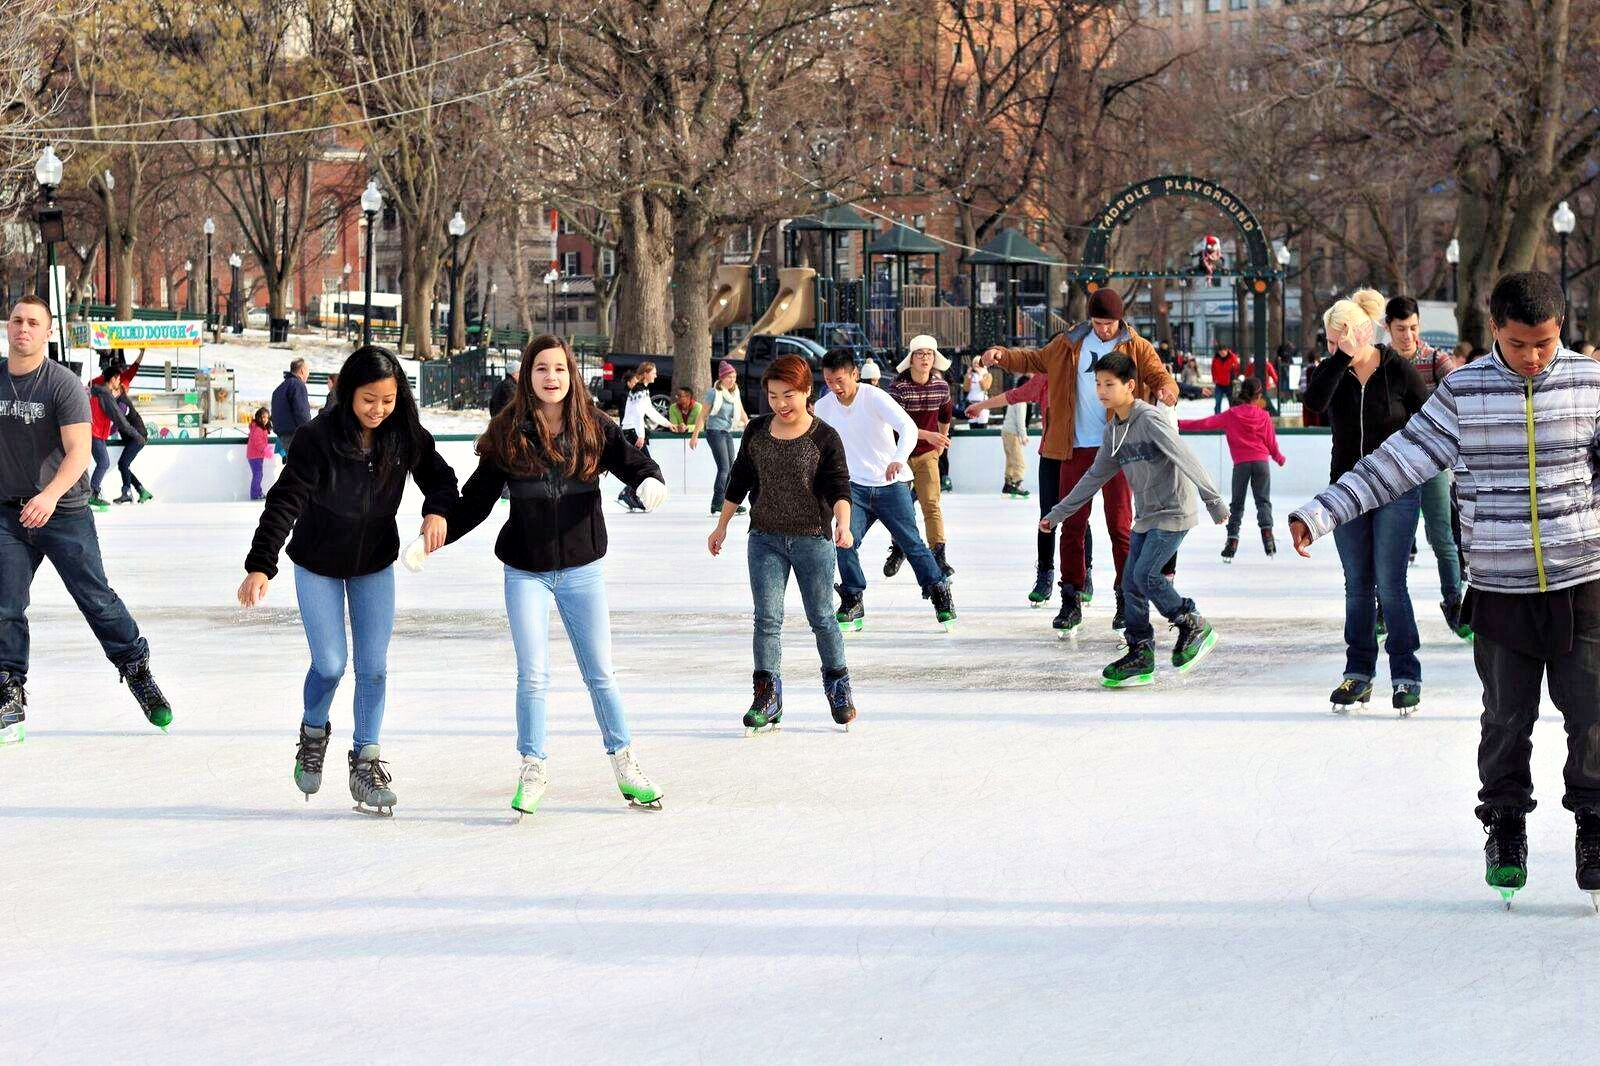 Outdoor Ice Skating Rinks Near Boston Open In 2020 2021 Mommy Poppins Things To Do With Kids Outdoor Ice Skating Ice Skating Rink Skating Rink